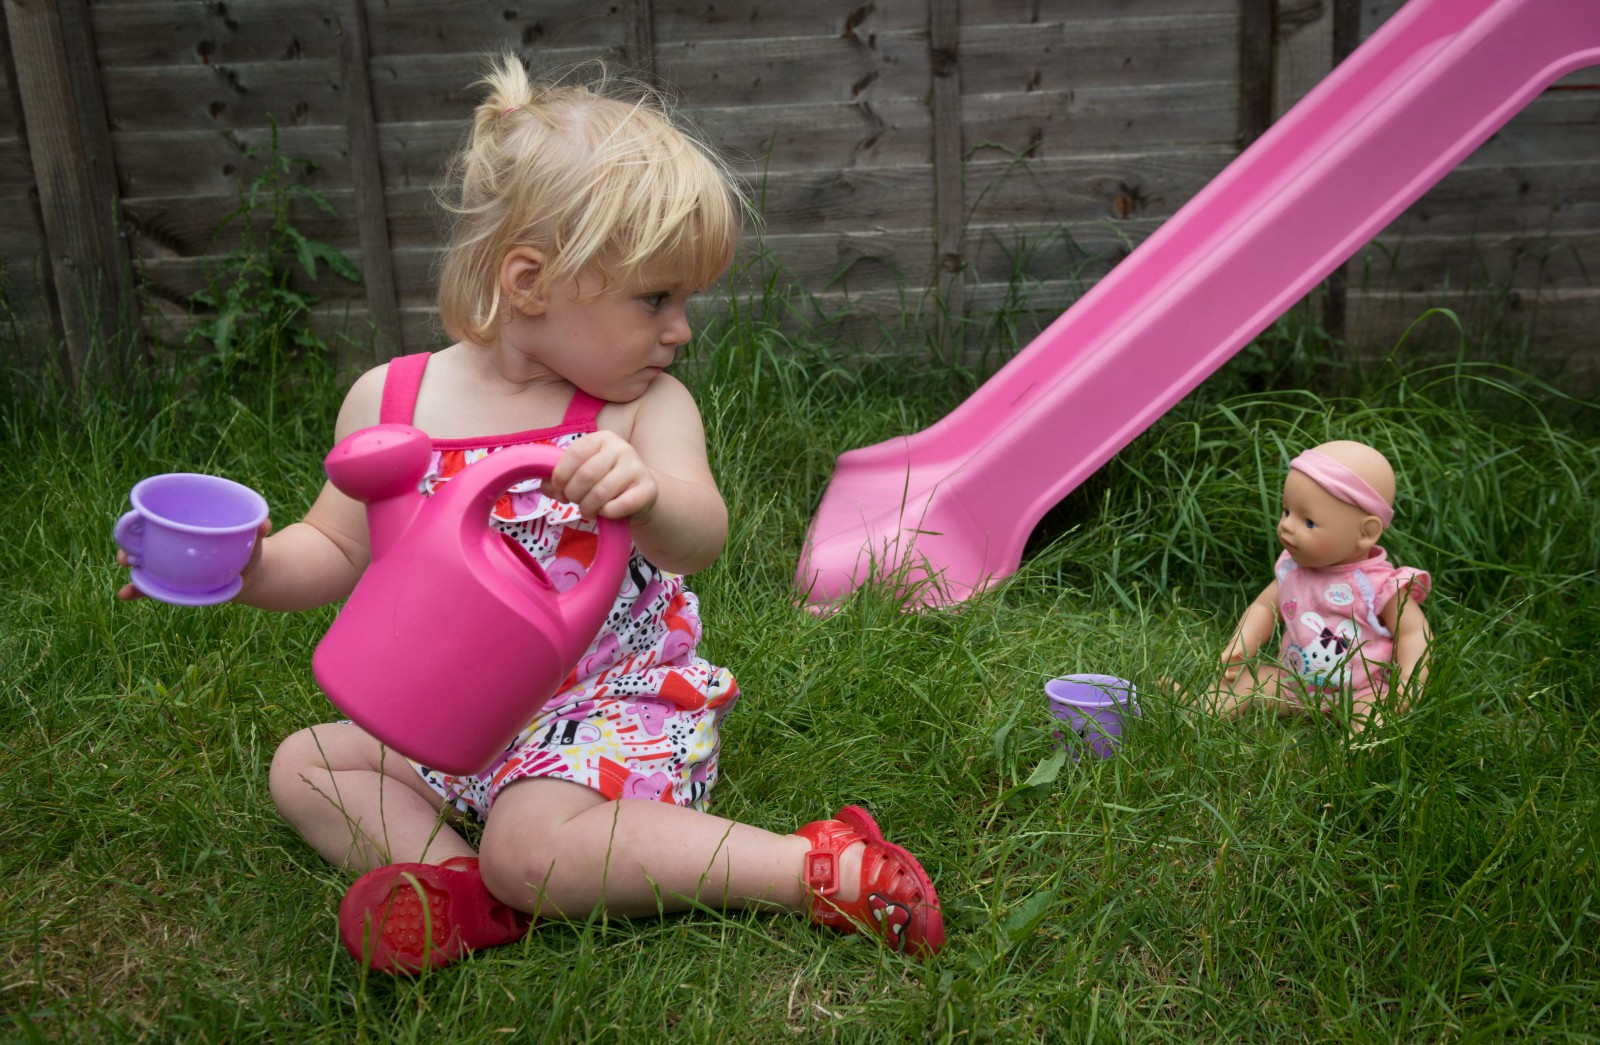 Dolly said WHAT?! Parents shocked at what toy taught two-year-old